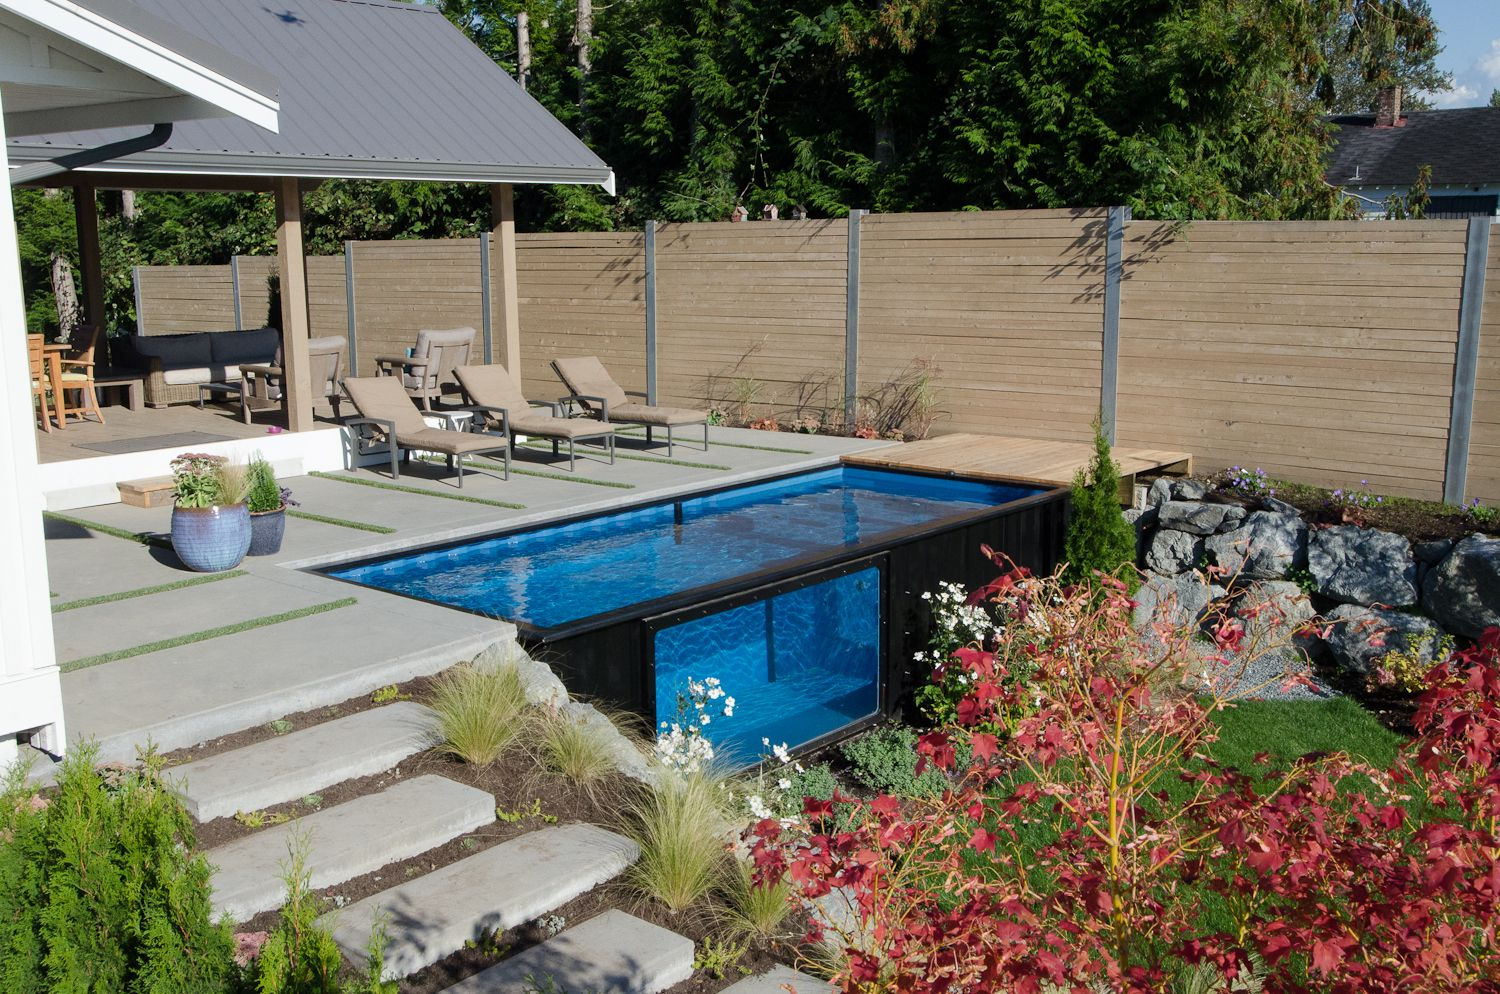 16 In-Ground Pool Designs - Best Swimming Pool Design Ideas for